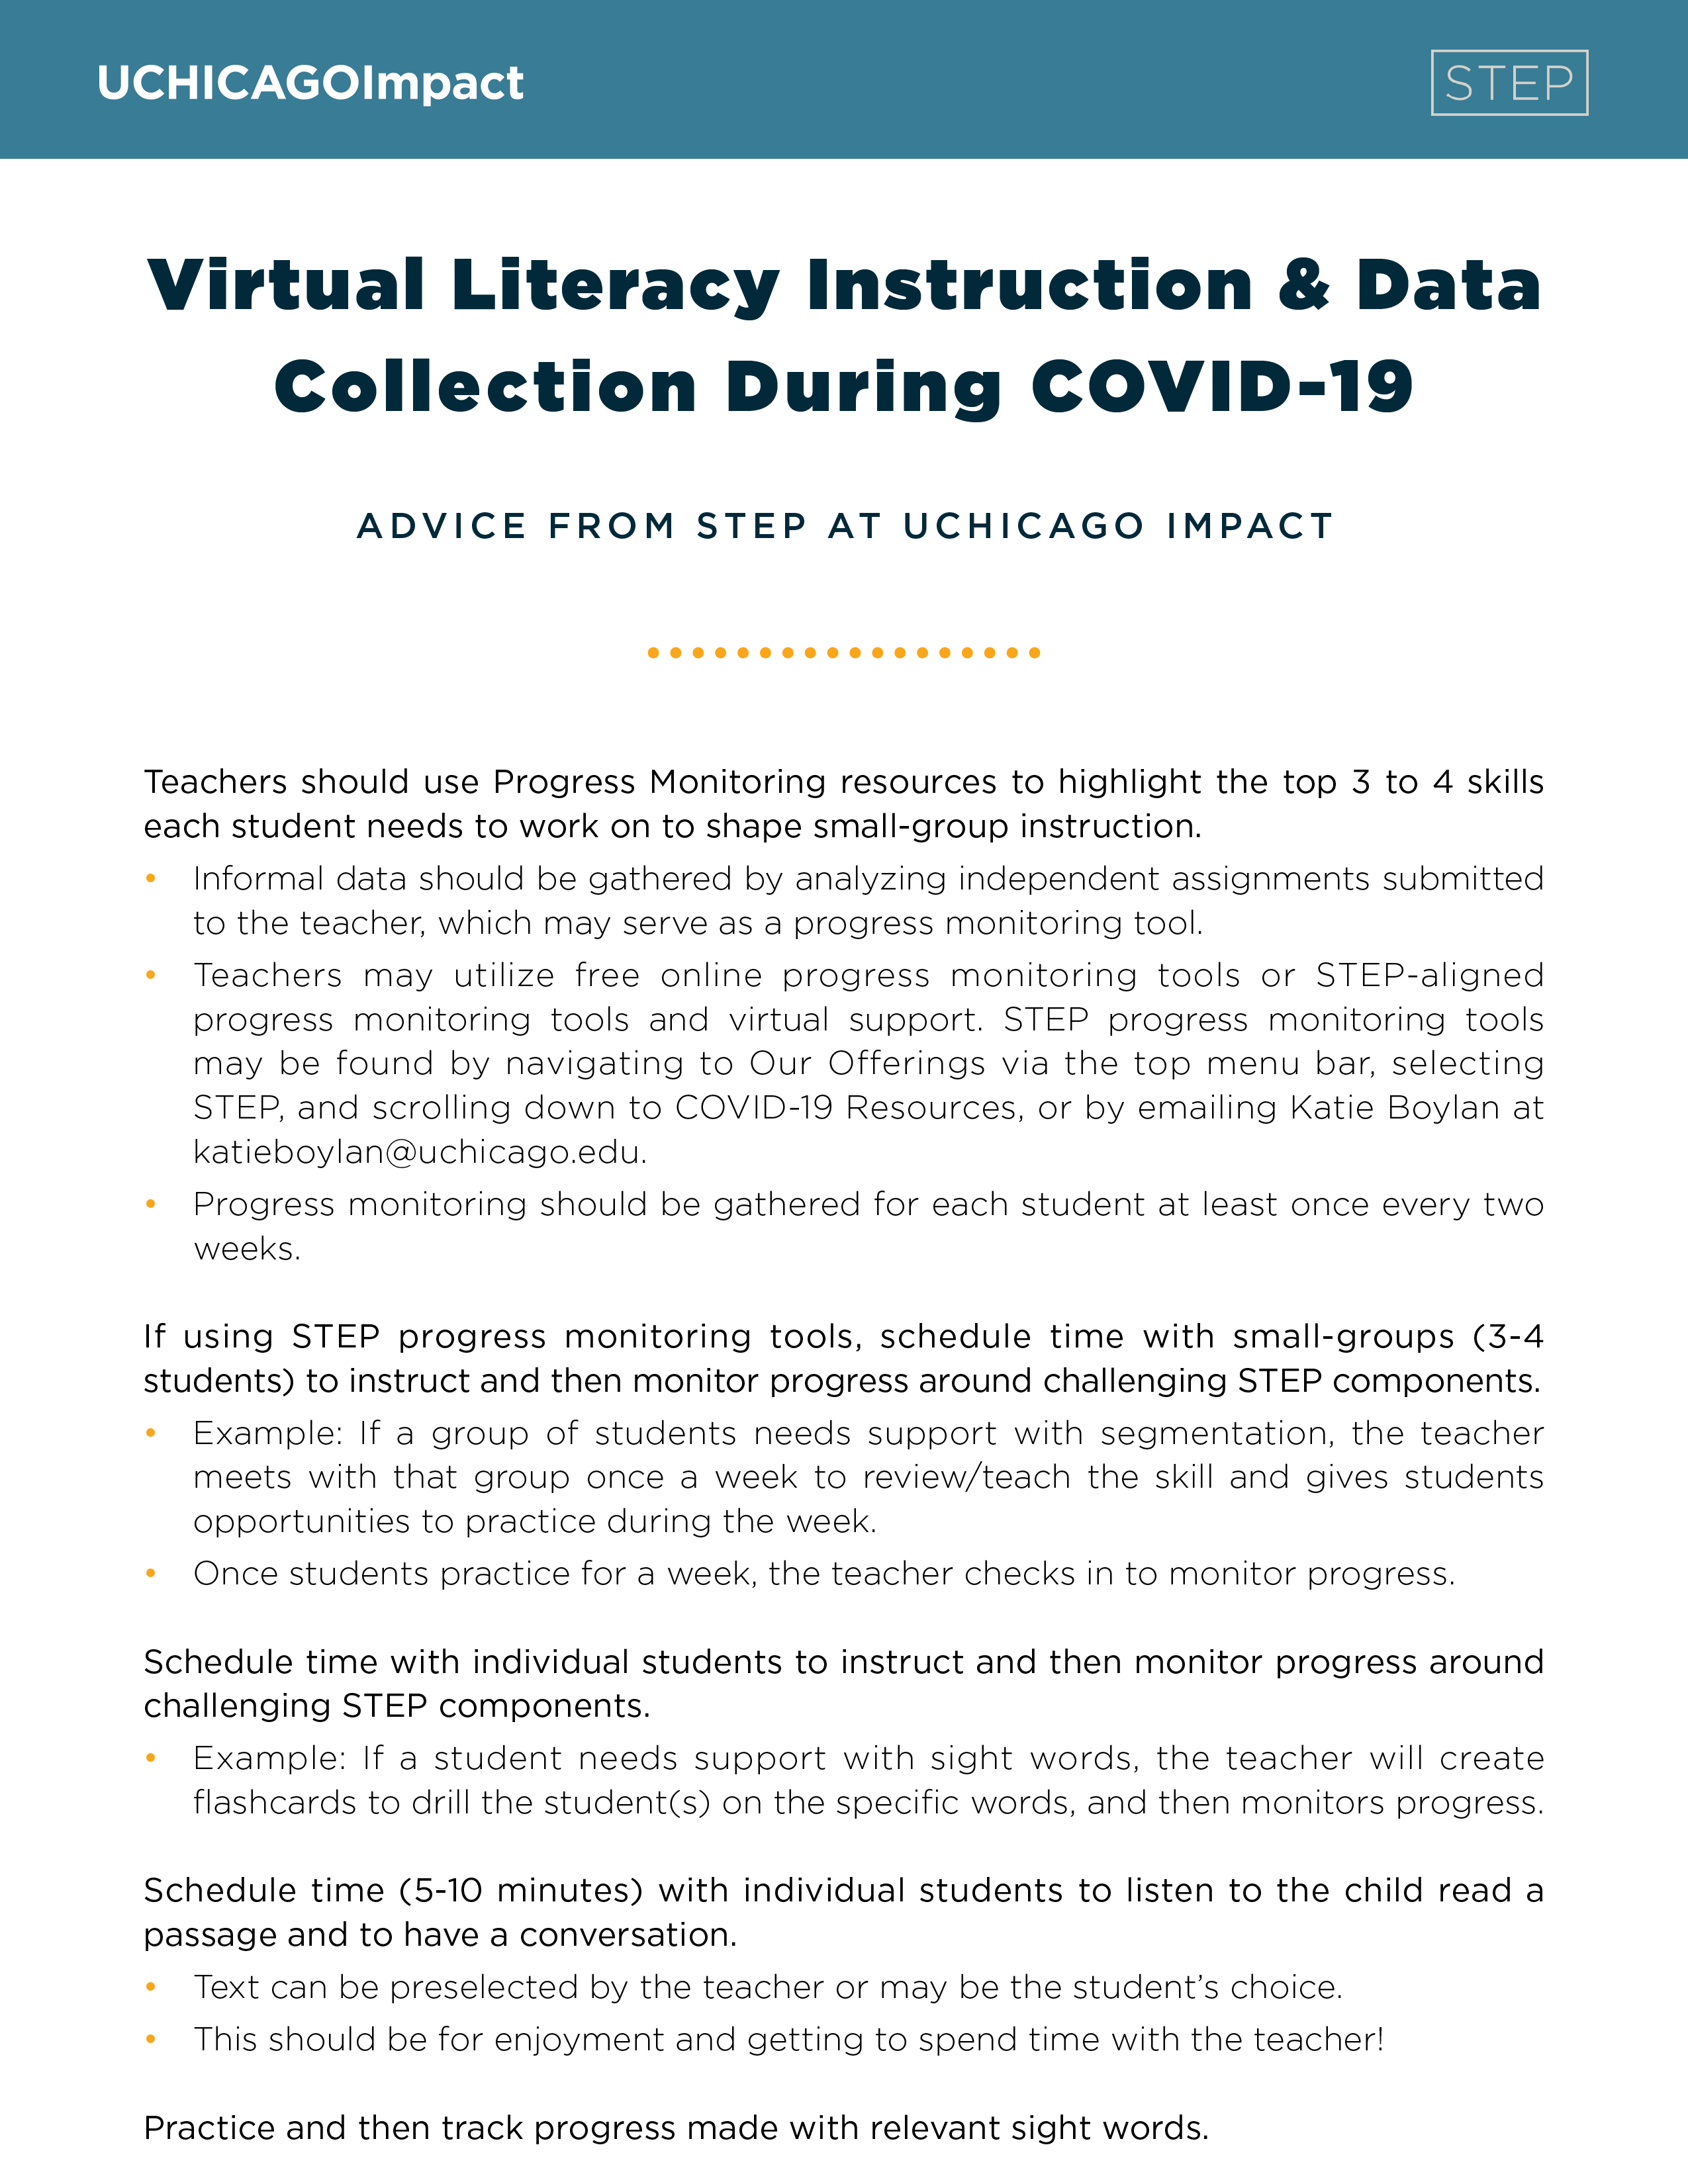 Virtual Literacy Instruction & Data Collection During COVID-19: Advice from STEP at UChicago Impact